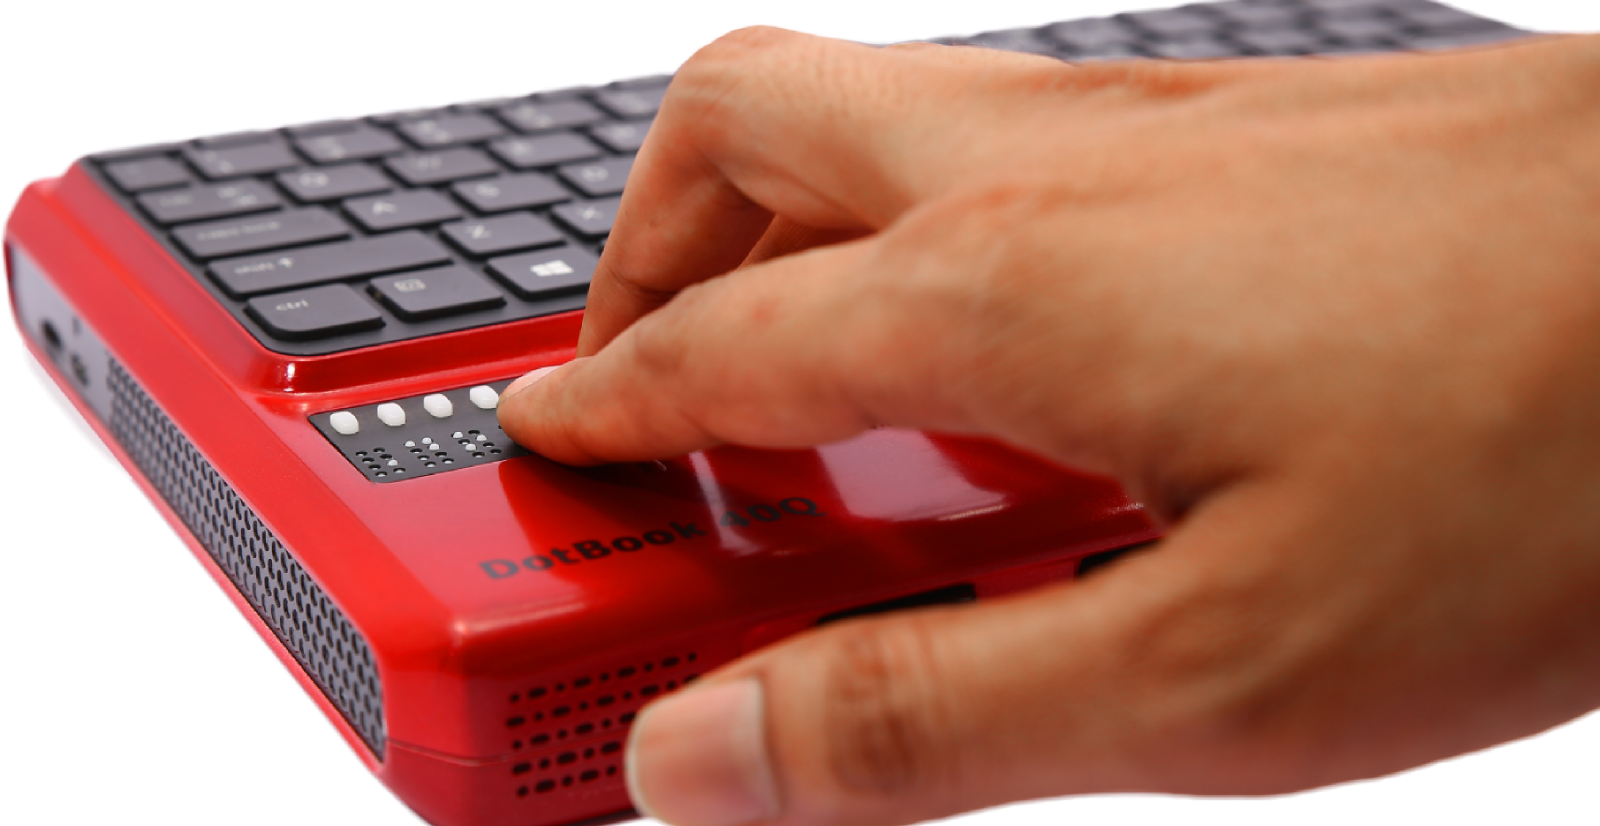 This image shows a person using DotBook's braille display.